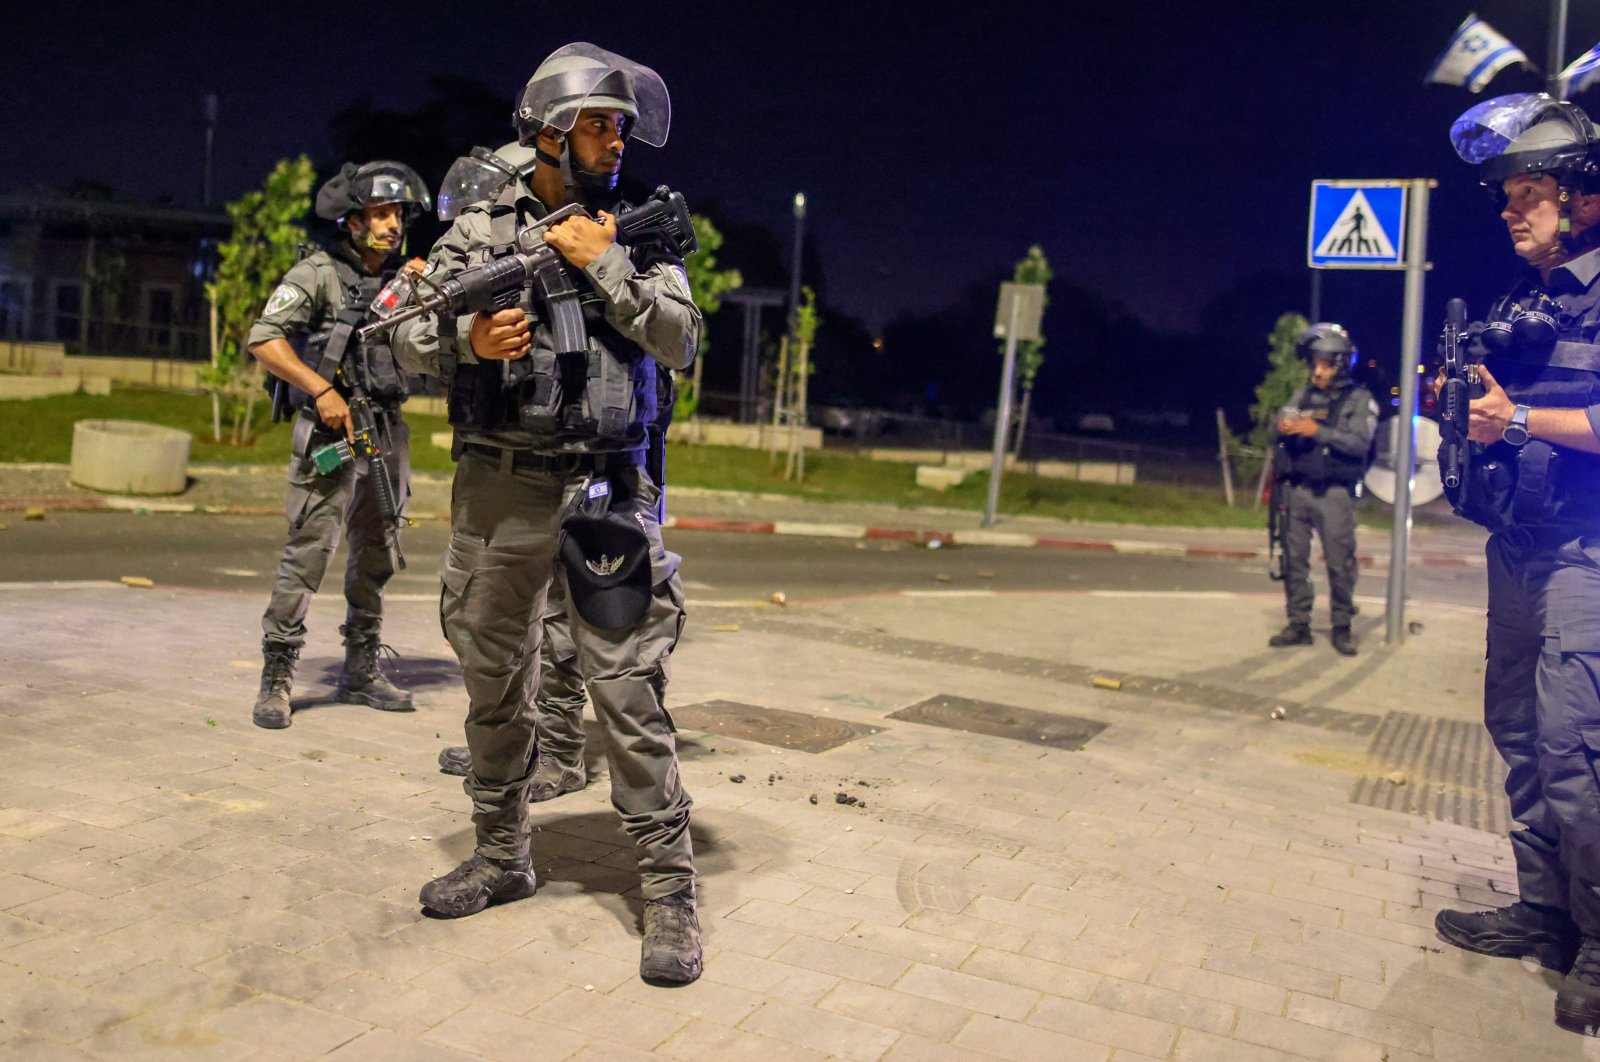 Israeli security forces are seen in a street in Lod near Tel Aviv, Israel, on May 12, 2021. (AFP Photo)